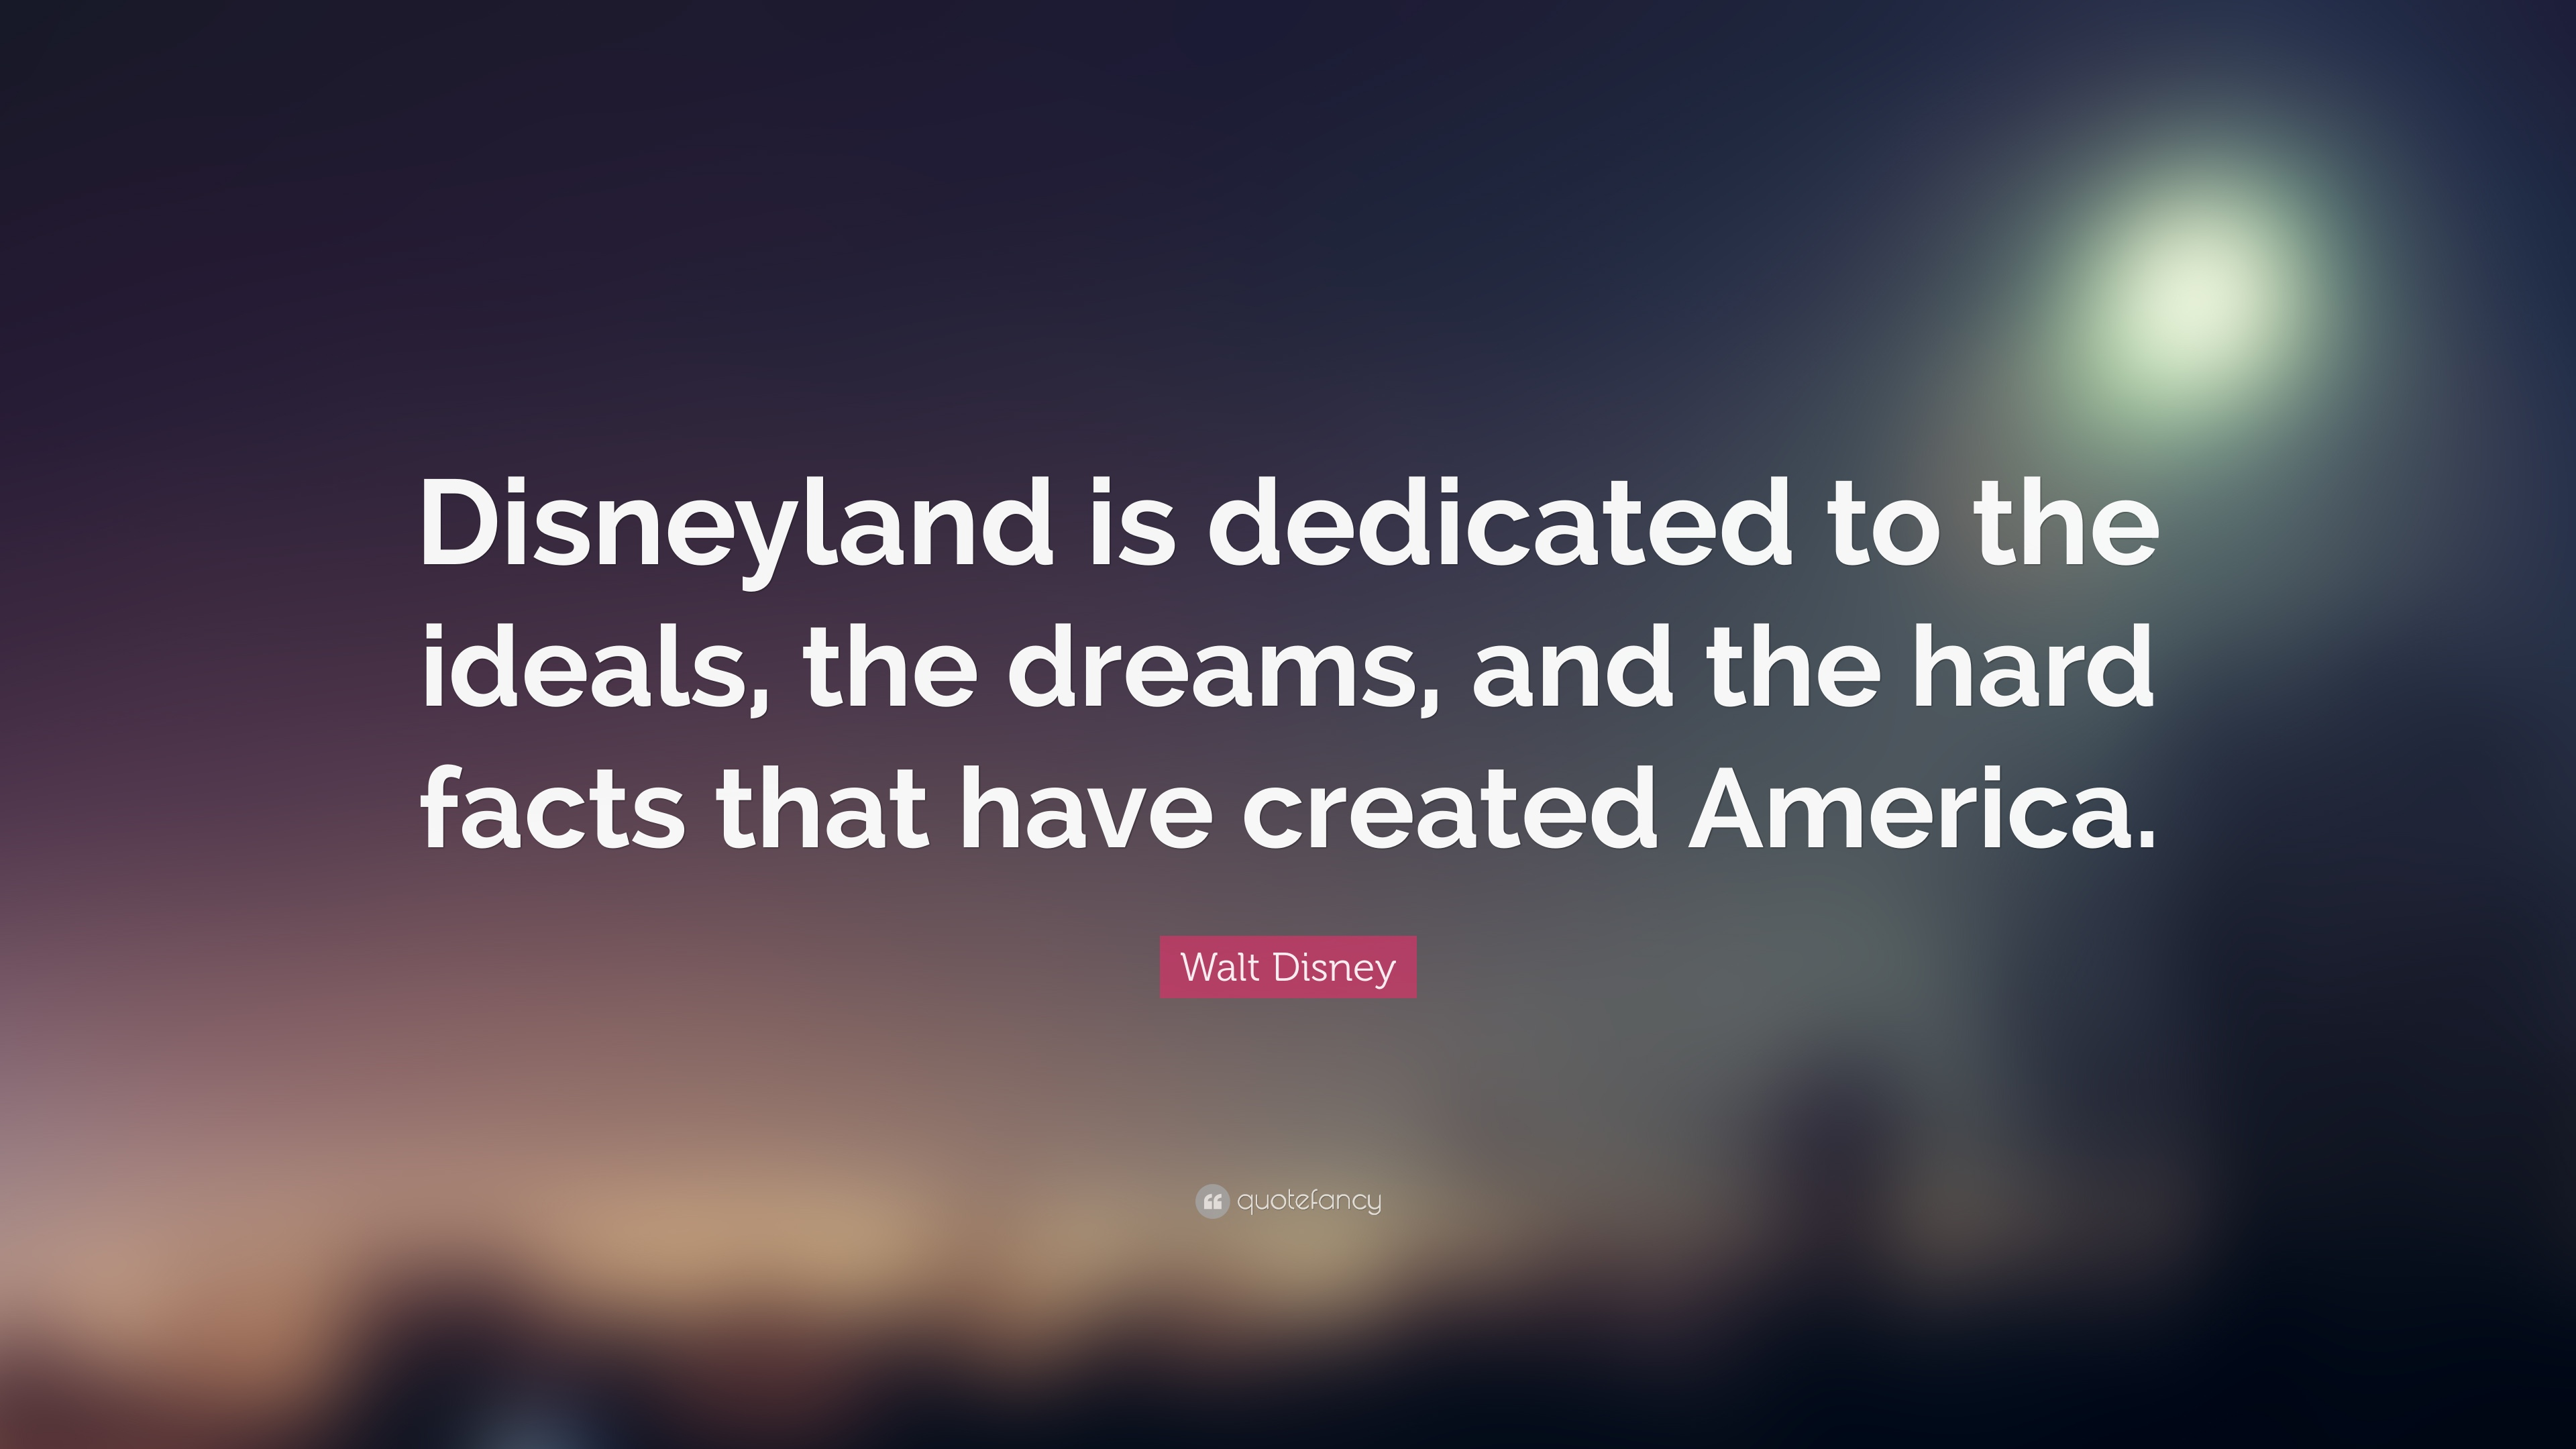 walt disney quote disneyland is dedicated to the ideals the dreams and